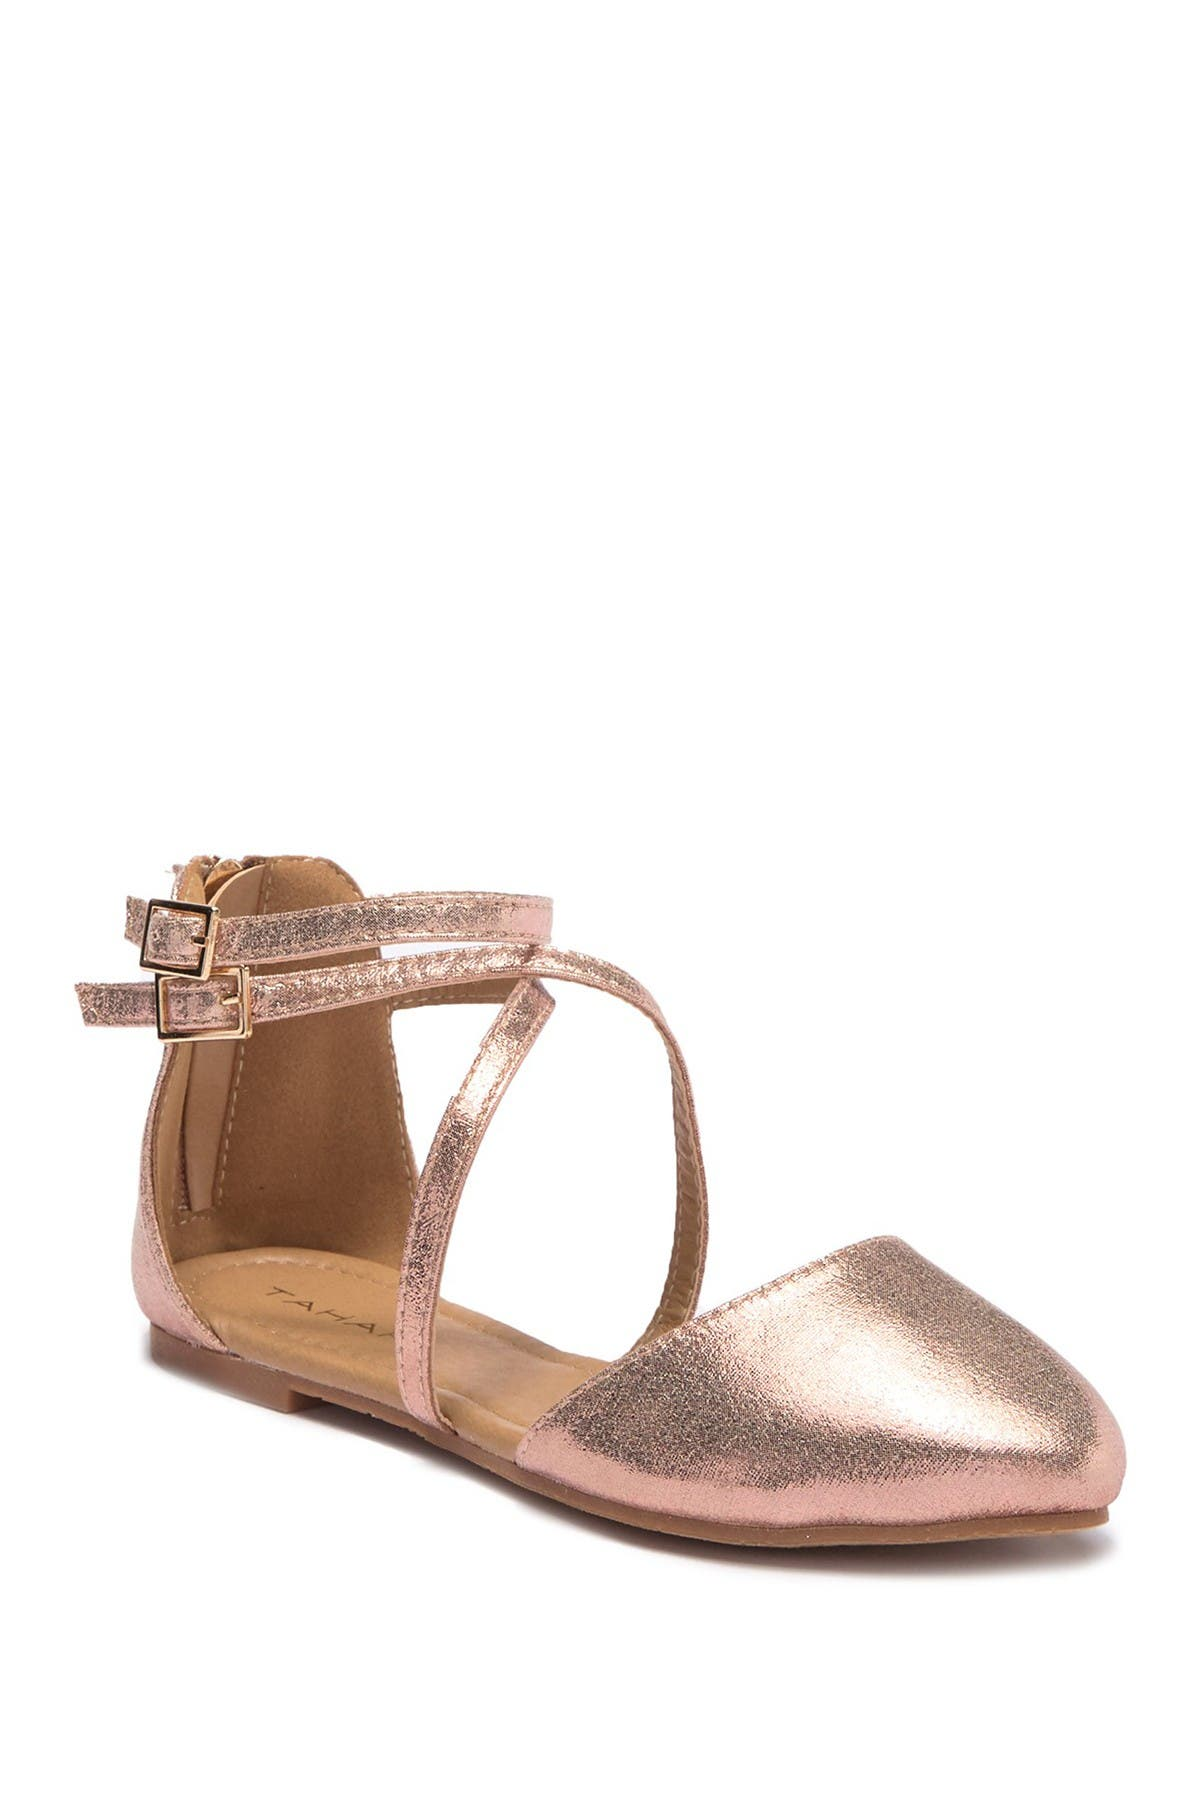 Image of Tahari Double Buckle Almond Toe Flat